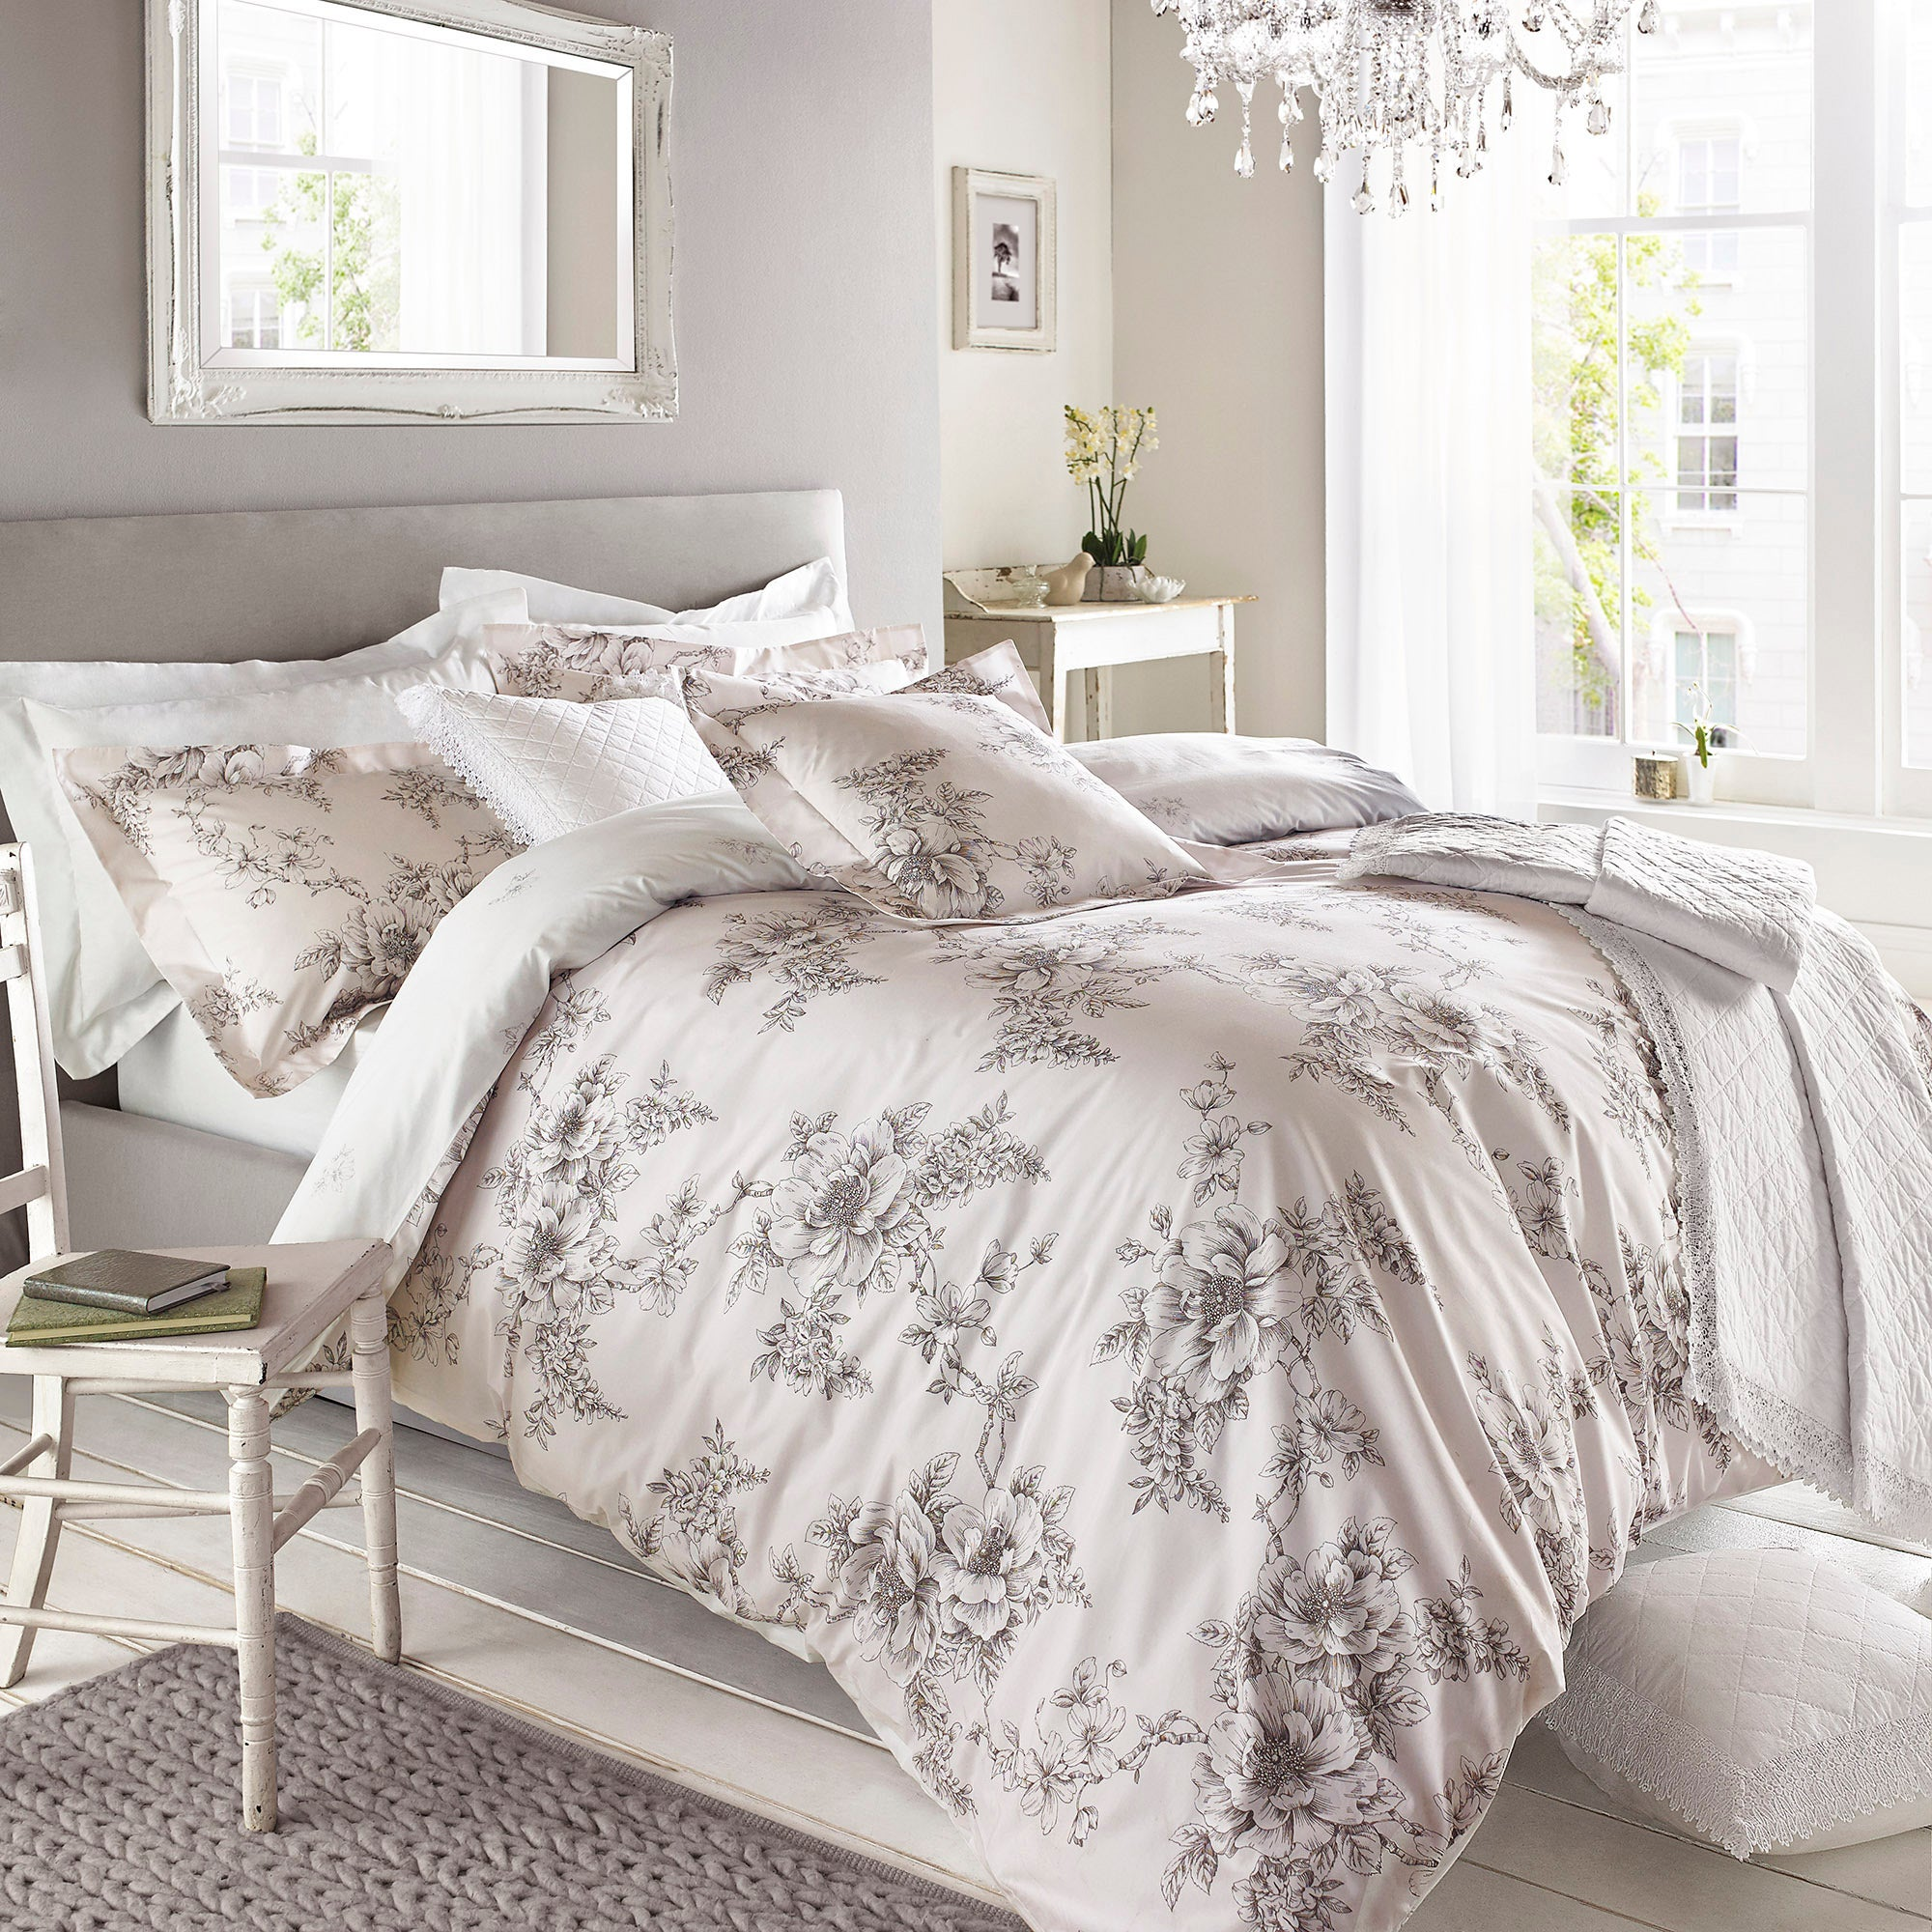 Image of Holly Willoughby Jenna Pink Duvet Cover Pink